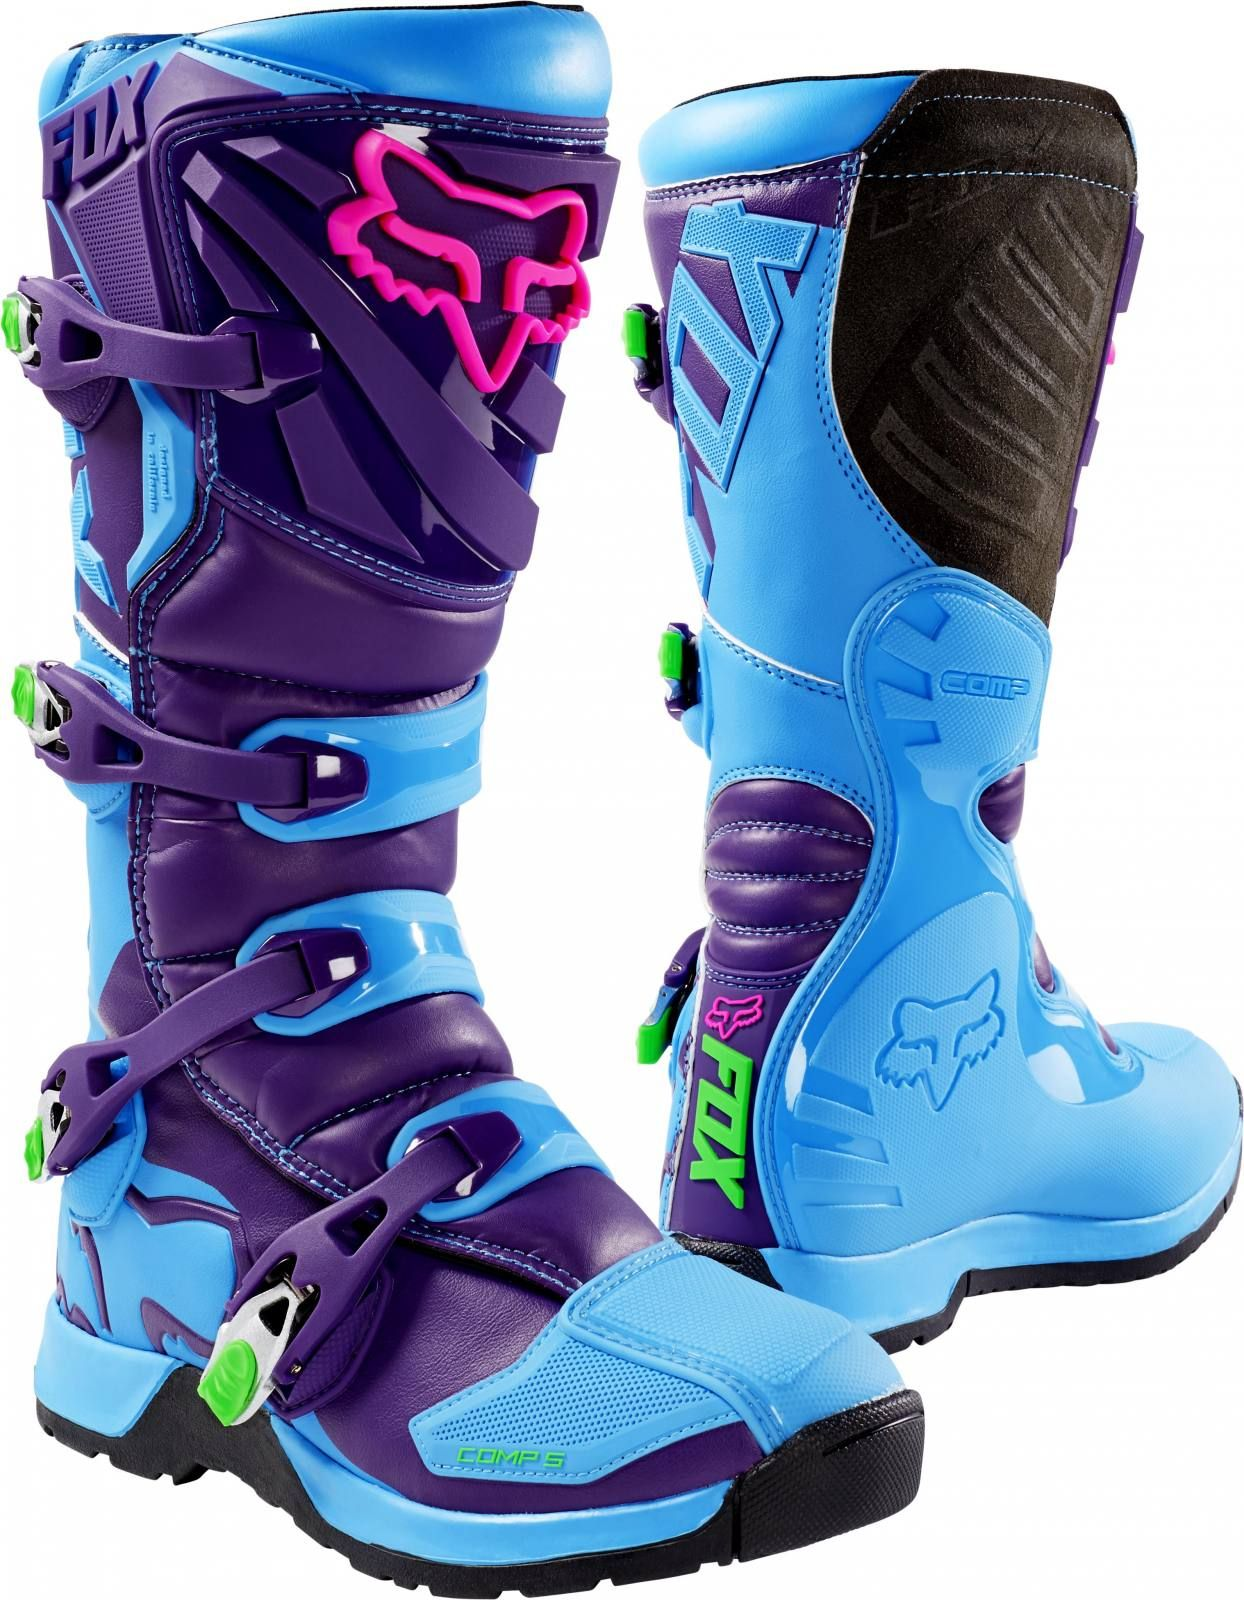 Comp 5 Limited Edition Youth Boots For Sale In Victoria Tx Dale S Fun Center Dirt Bike Boots Bike Boots Bike Gear